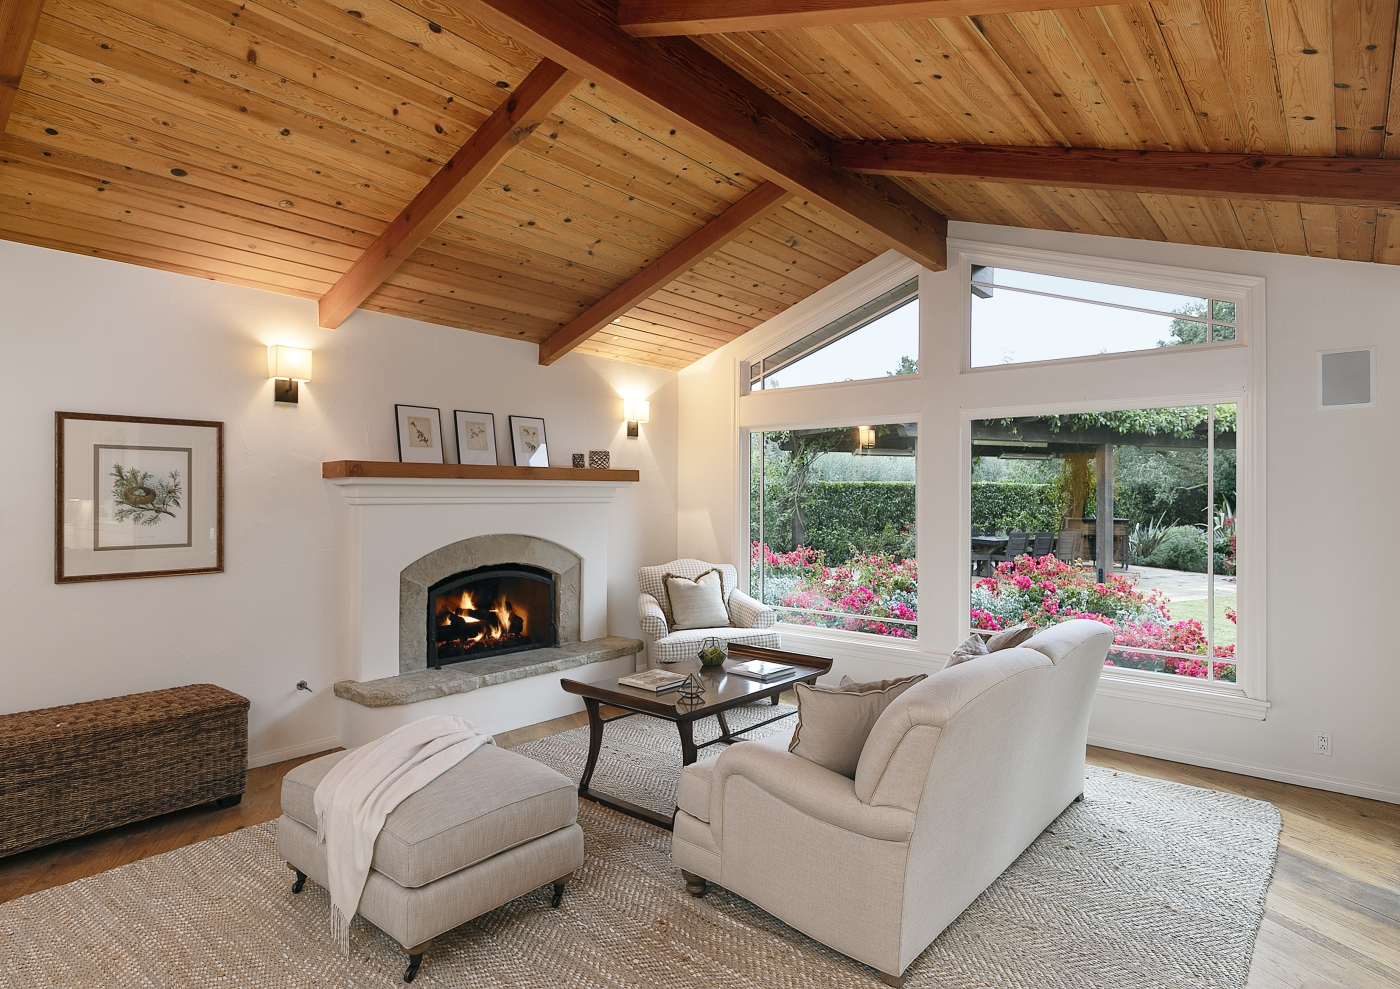 Generous & naturally lit Family room with cozy fireplace